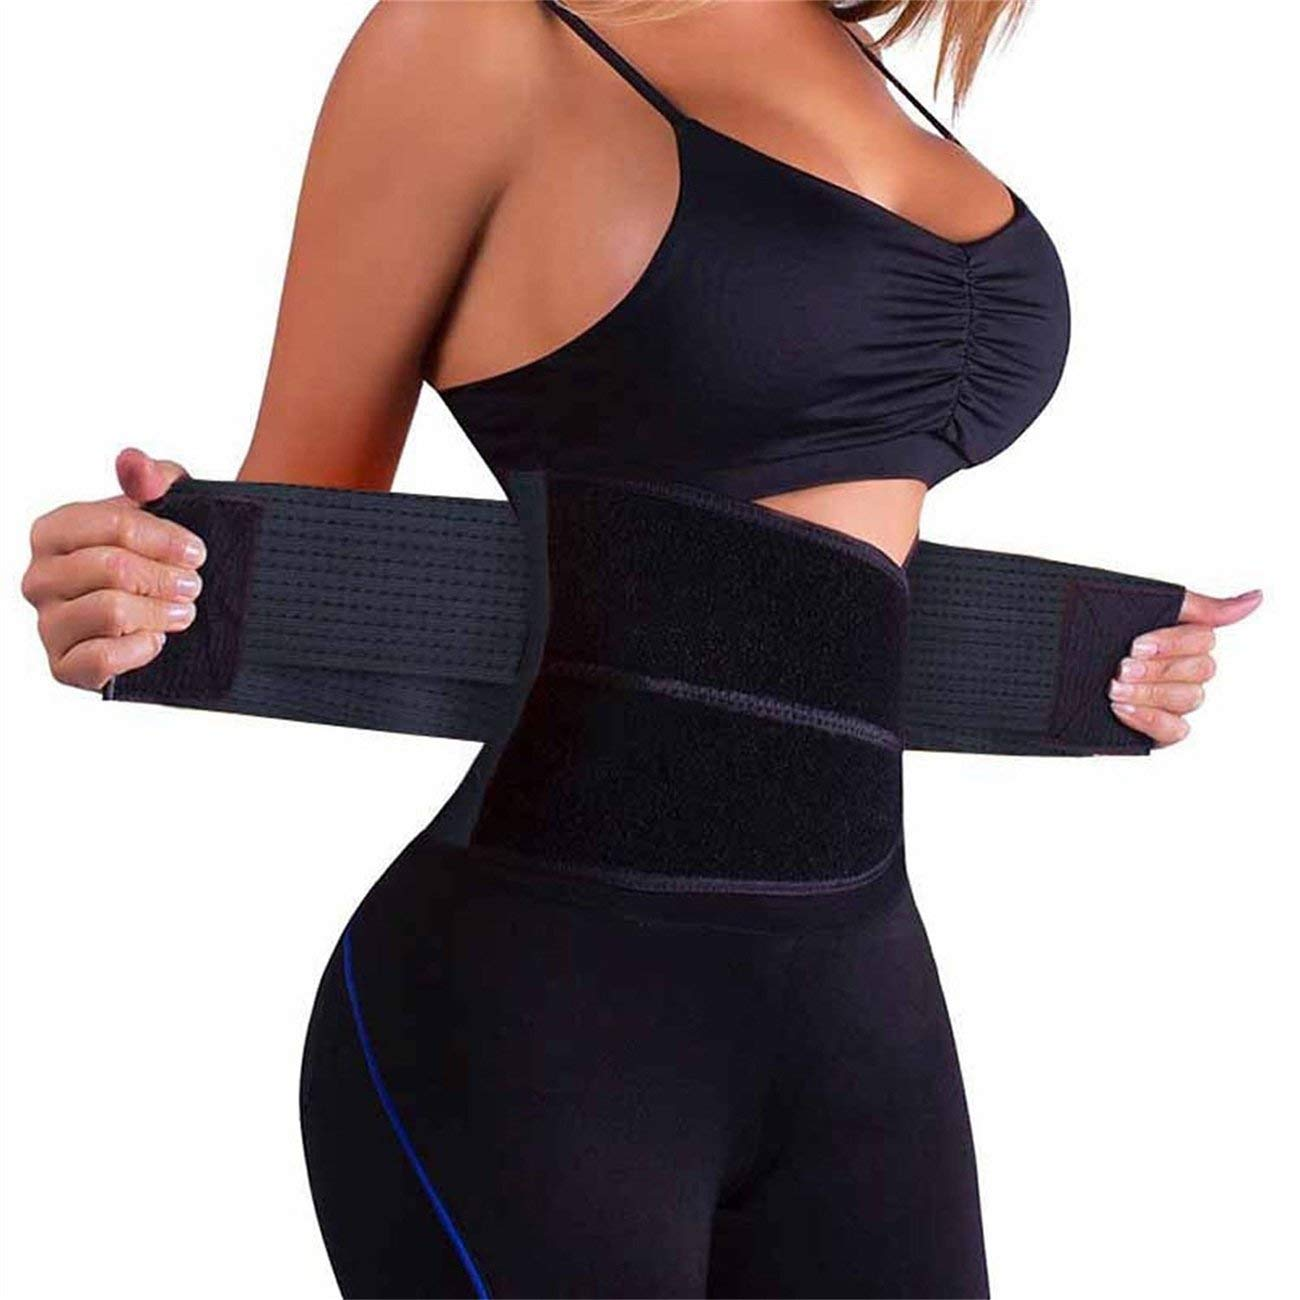 QEESMEI Waist Trainer Belt for Women - Waist Cincher Trimmer - Slimming Body Shaper Belt - Sport Girdle Belt by QEESMEI